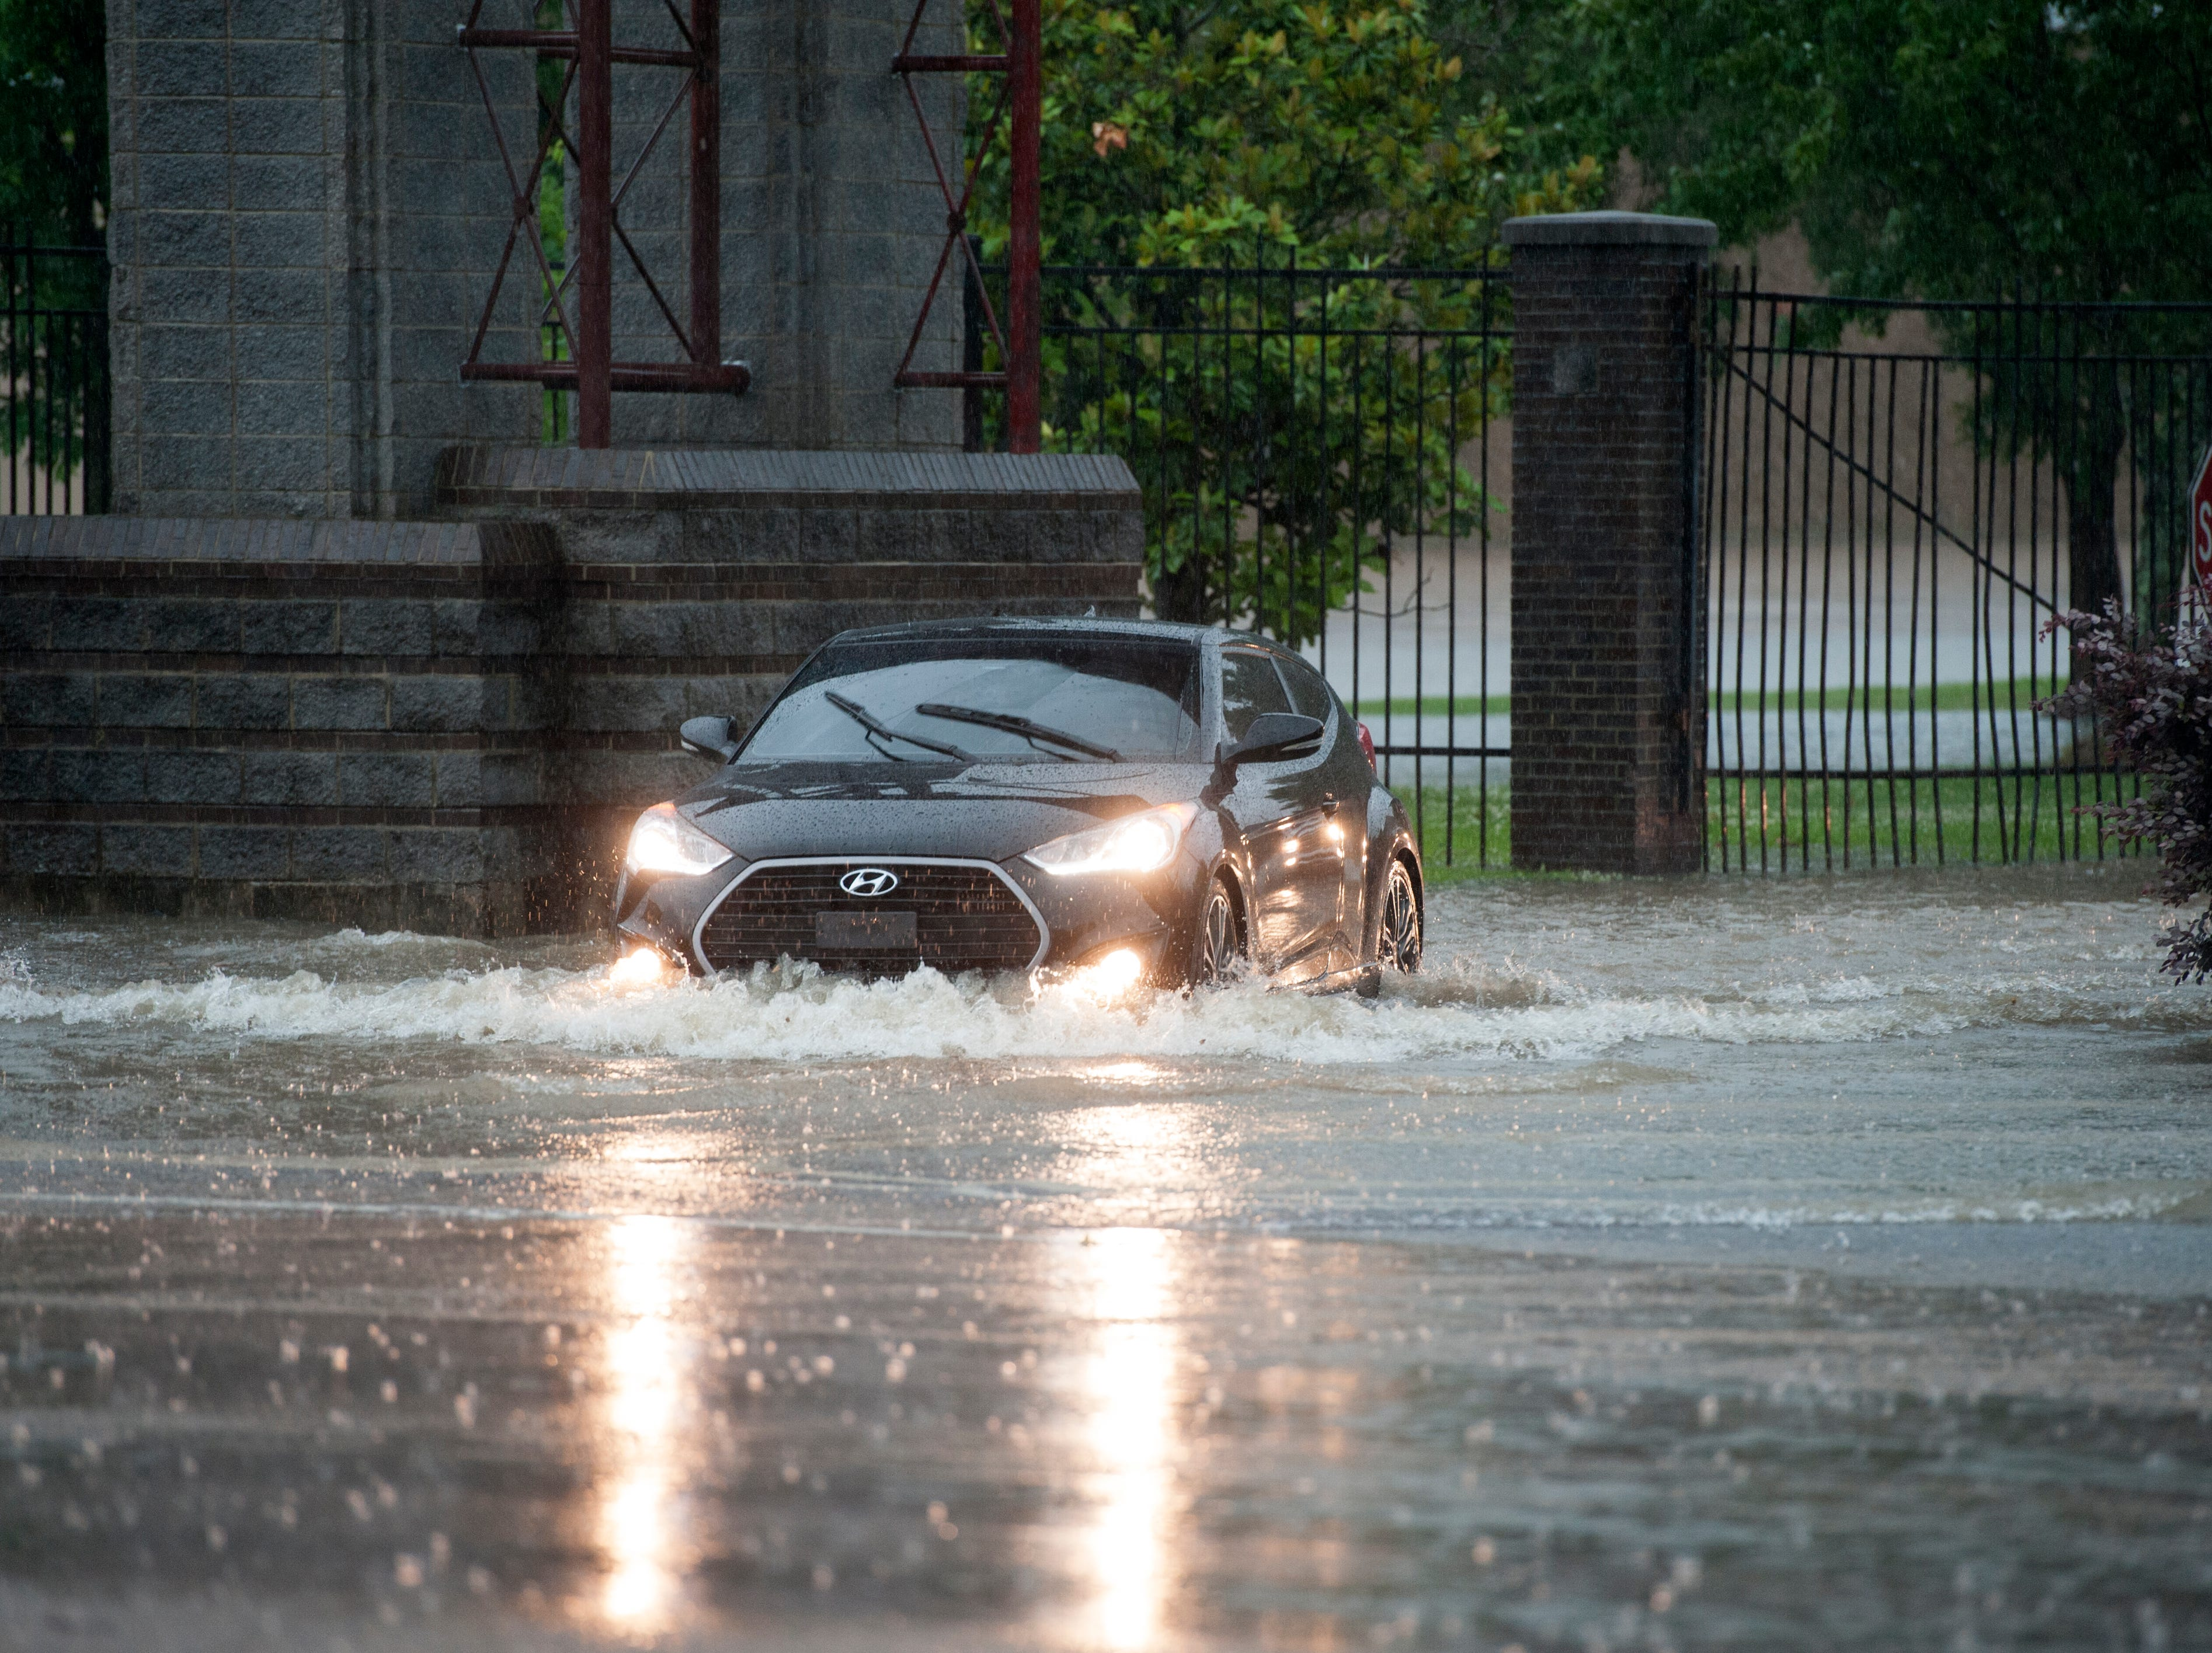 The driver of a Hyundai sedan goes through floodwaters at the High Street exit of the Mississippi State Fairgrounds Thursday. Thunderstorms are expected to continue throughout the morning with rain tapering off this evening. Thursday, May 9, 2019